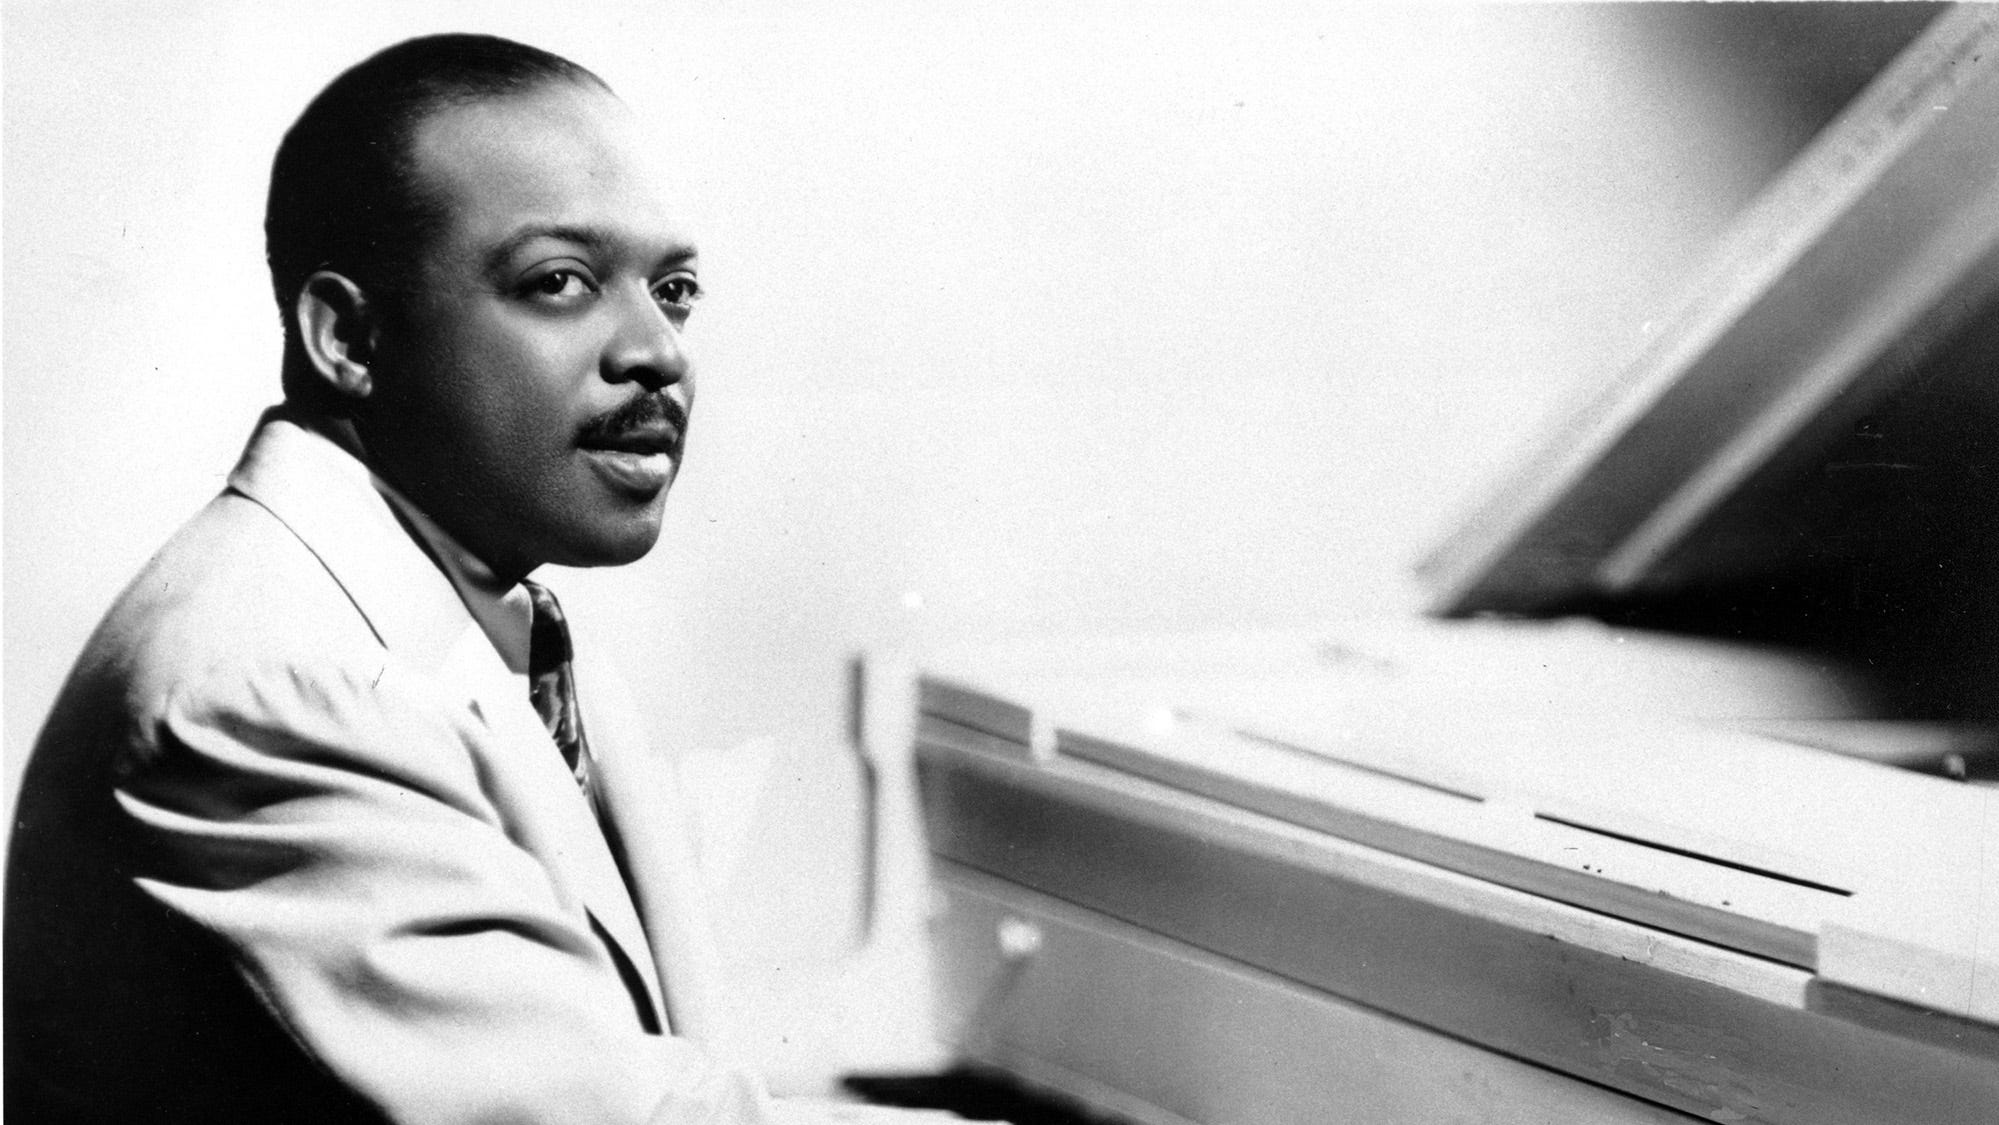 Jersey jazz icon Count Basie gets his own archive at Rutgers-Newark